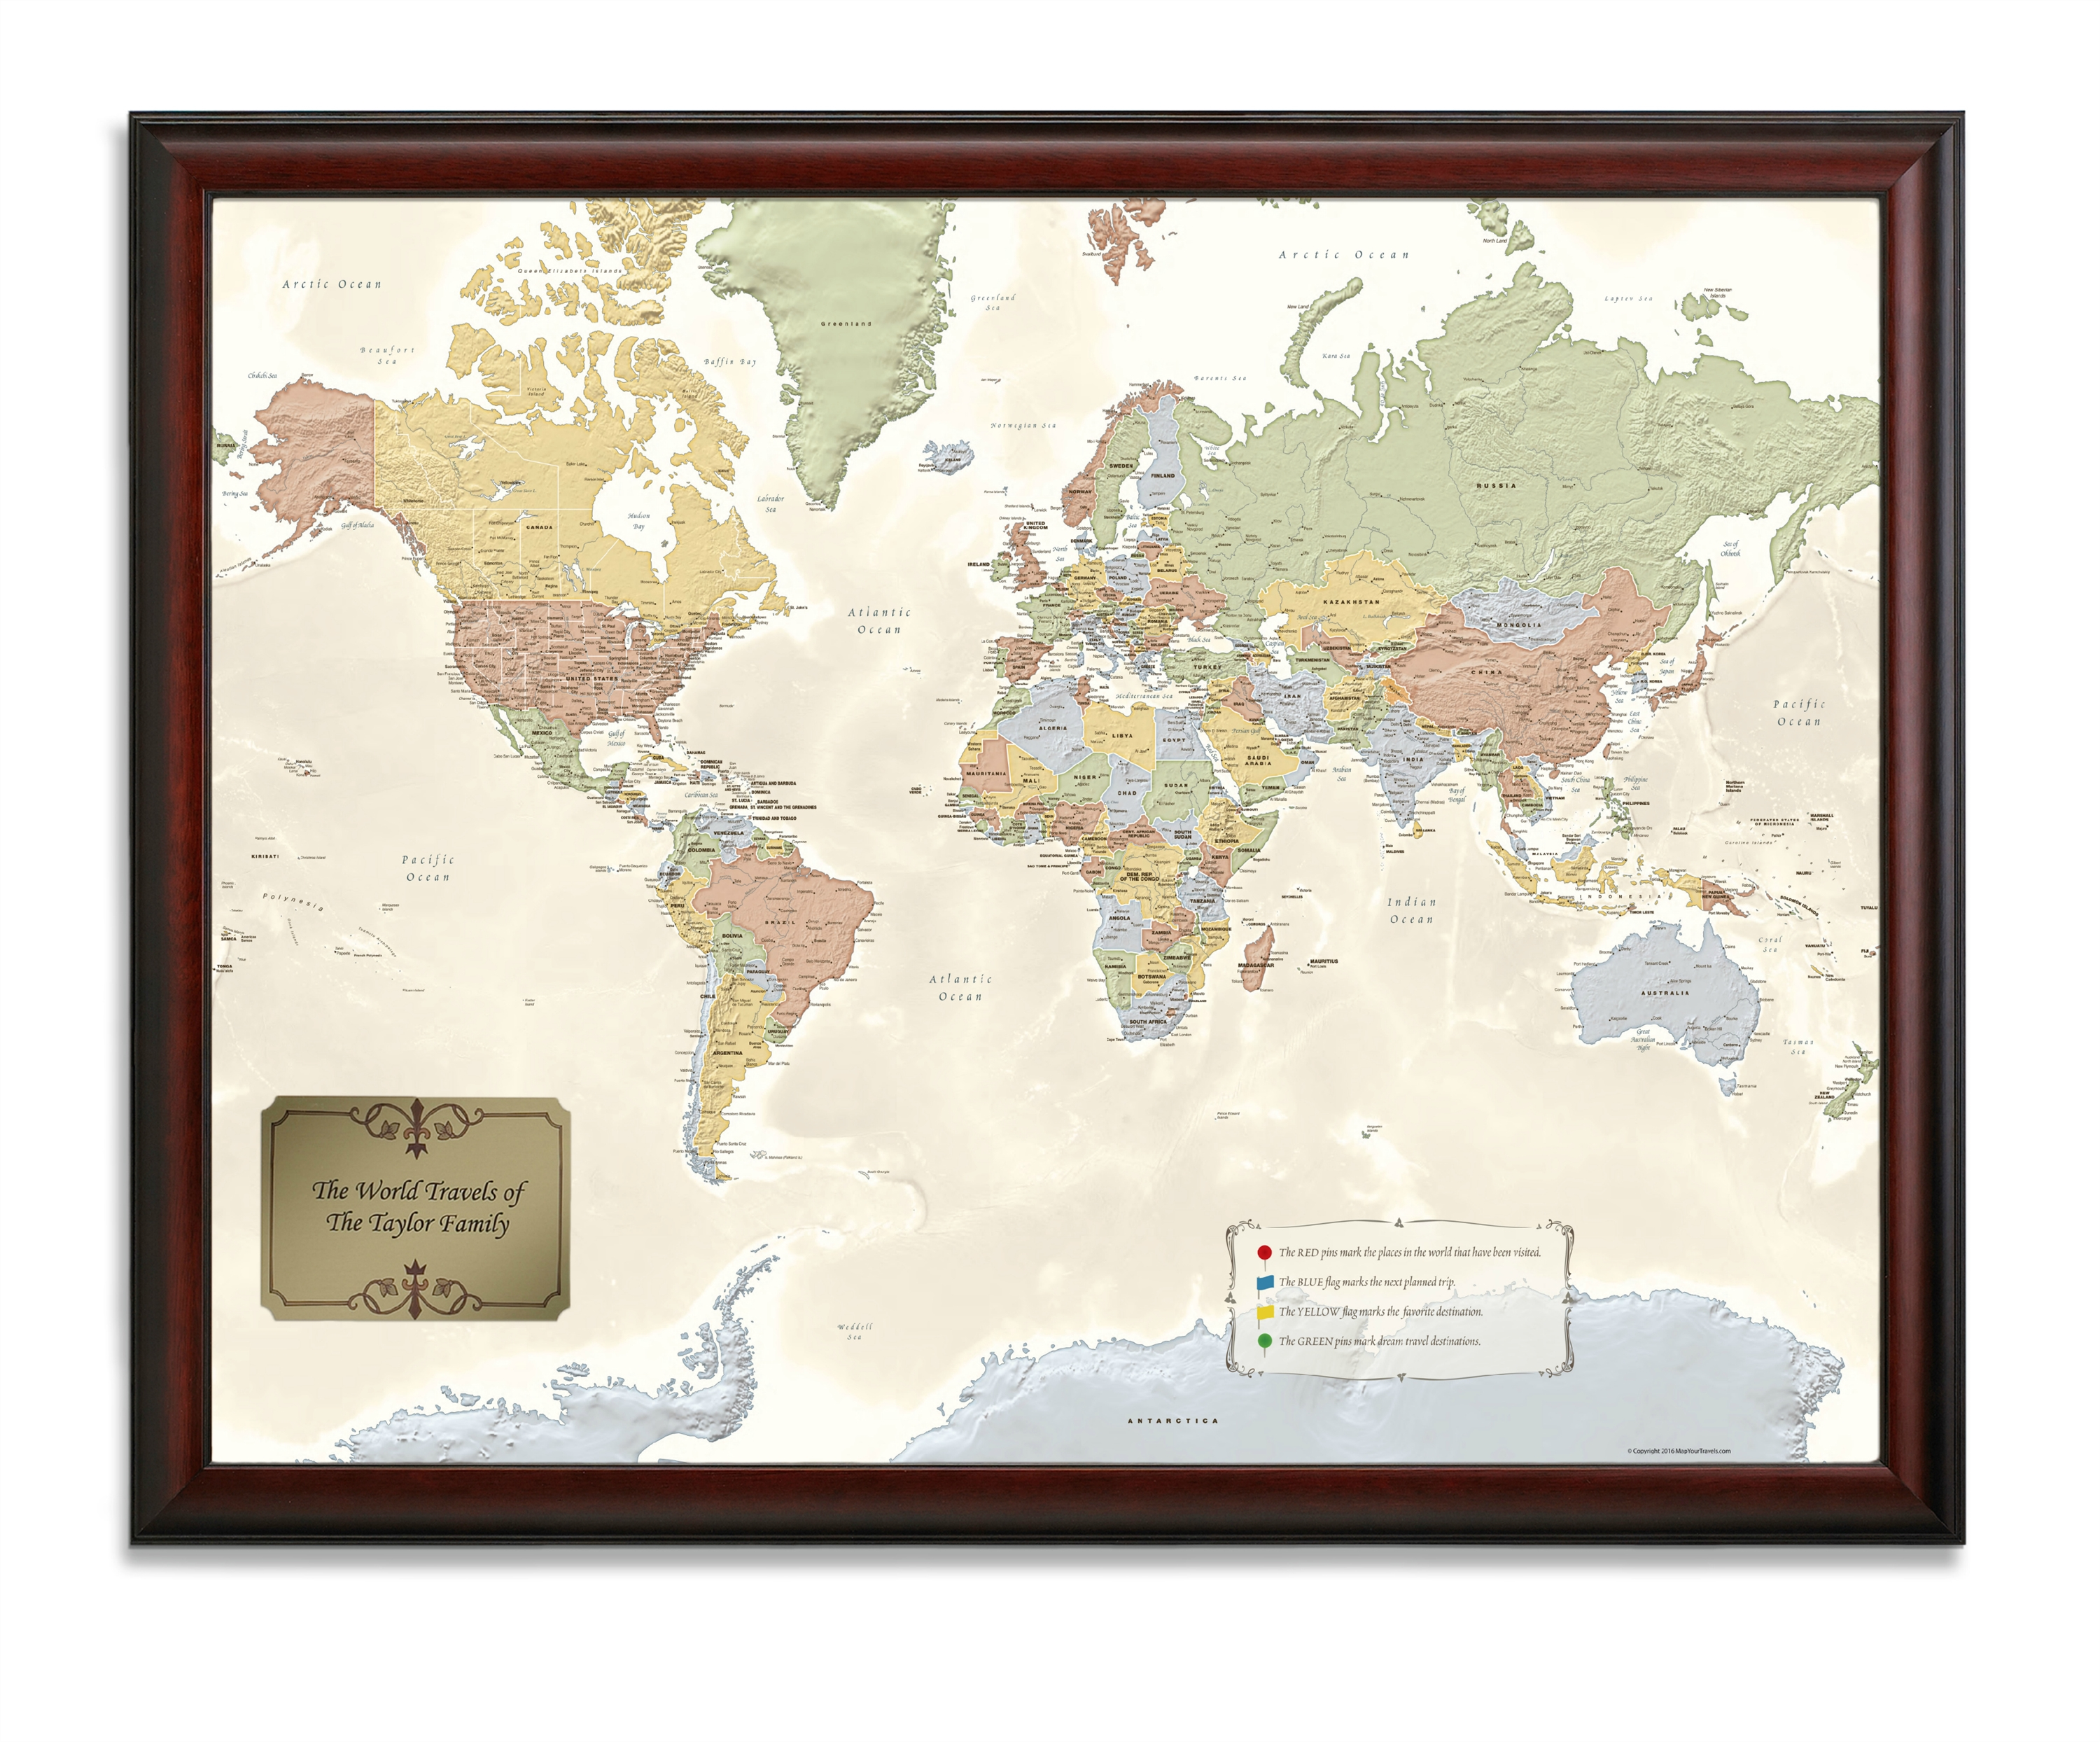 World traveler map personalized from onlyglobes free shipping world traveler map framed and personalized sciox Images